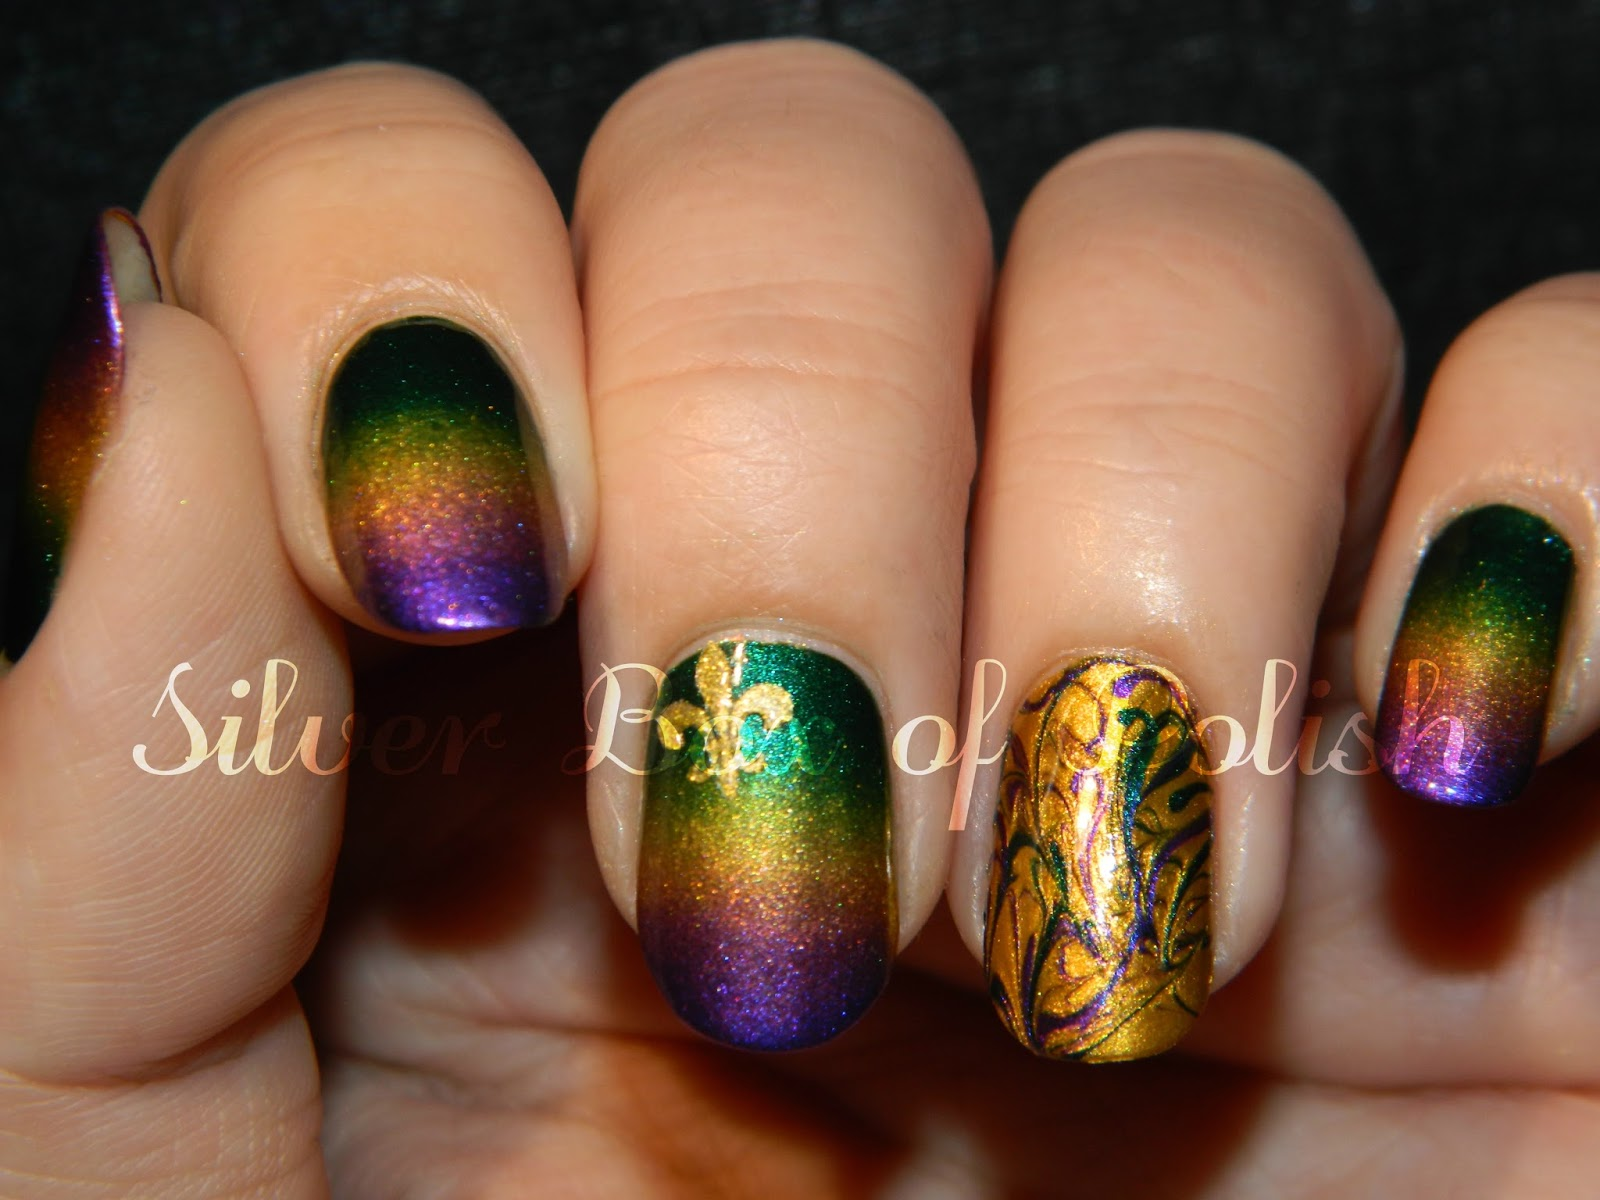 Silver Box of Polish: Mardi Gras Nails